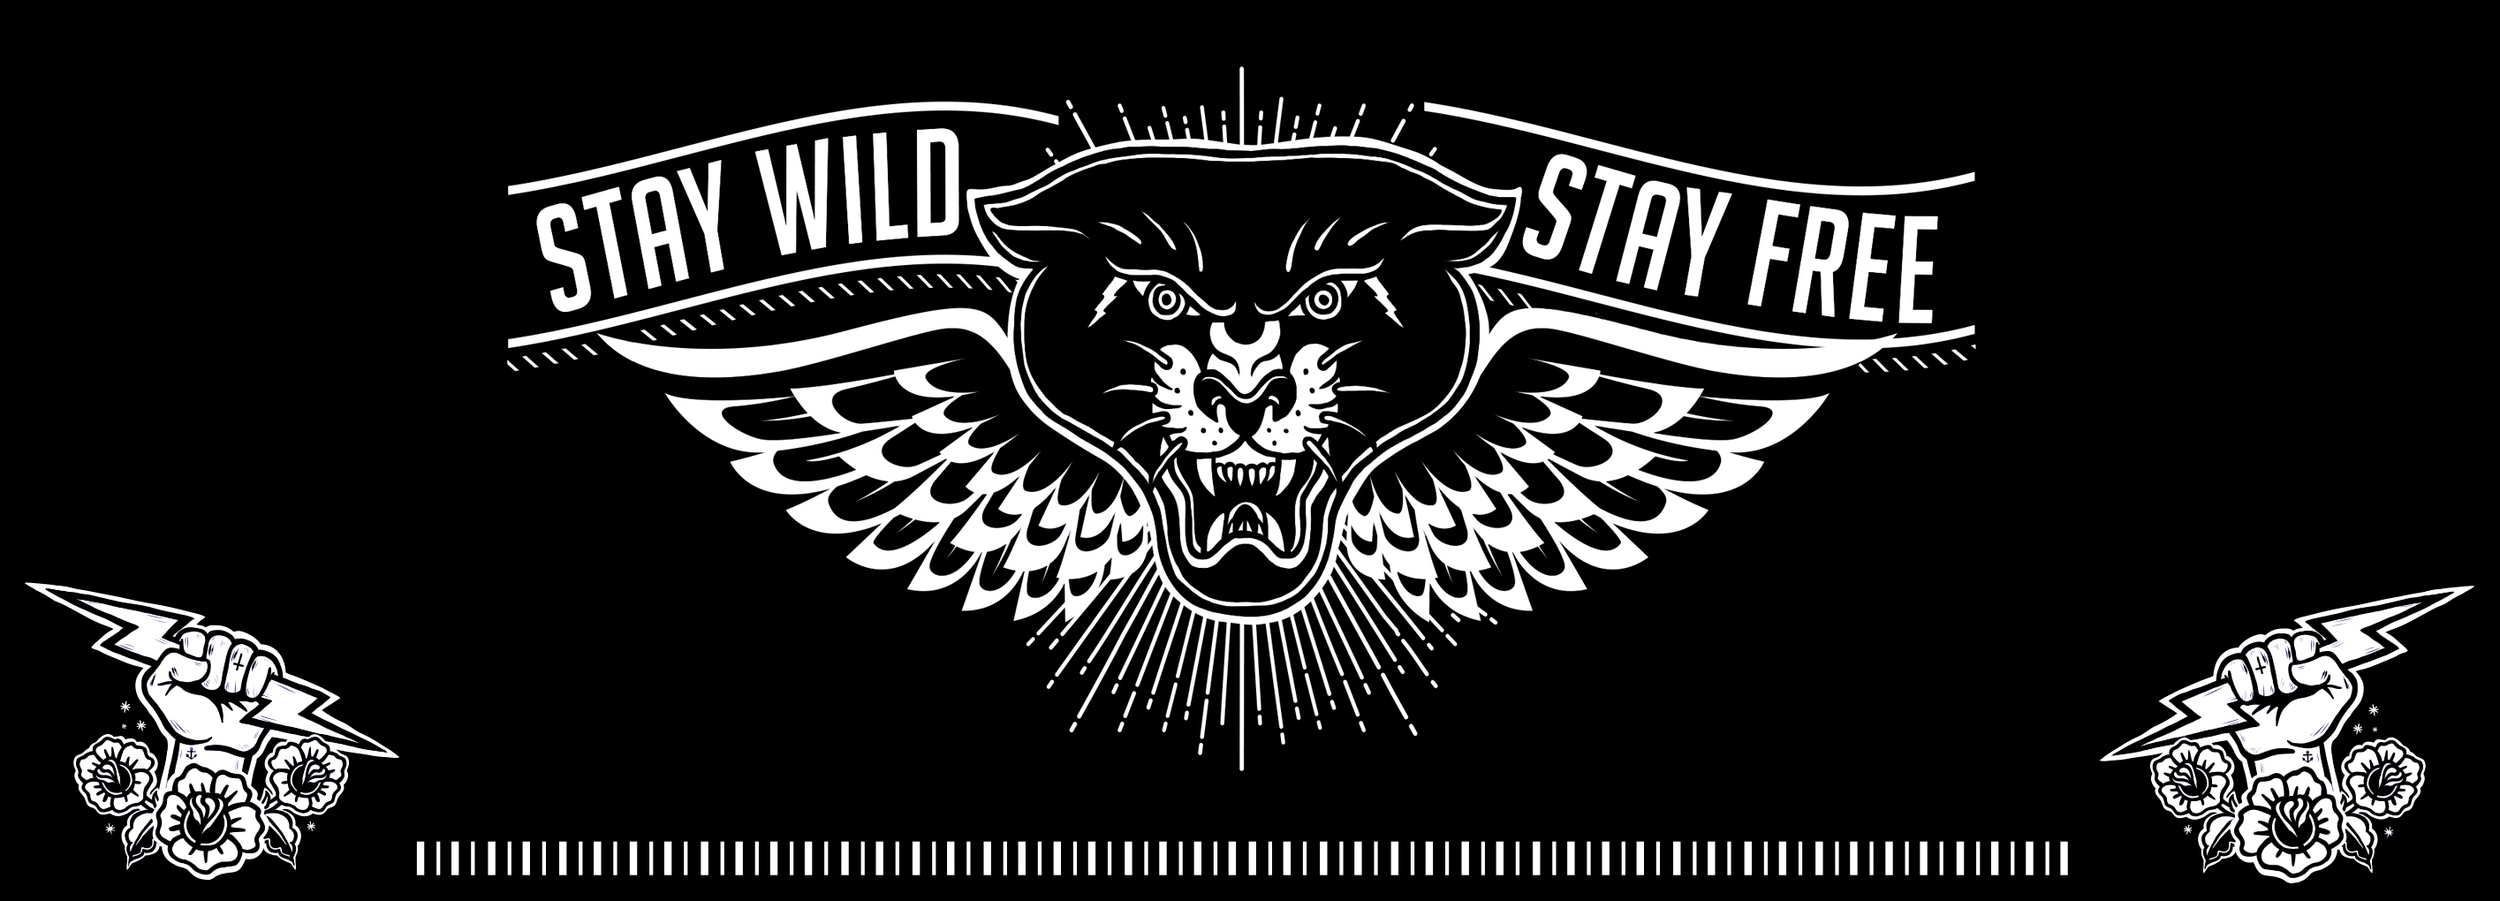 Native products | Stay Wild, Stay Free